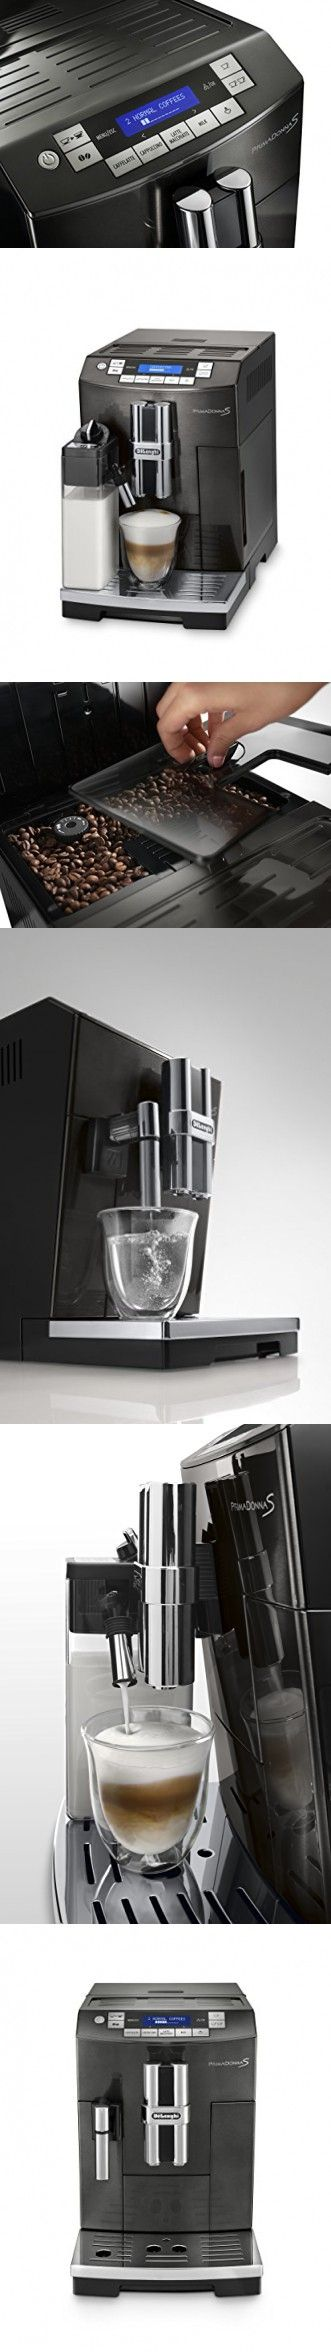 DeLonghi America ECAM28465B Prima Donna Fully Automatic Espresso Machine with Lattecrema System, Black